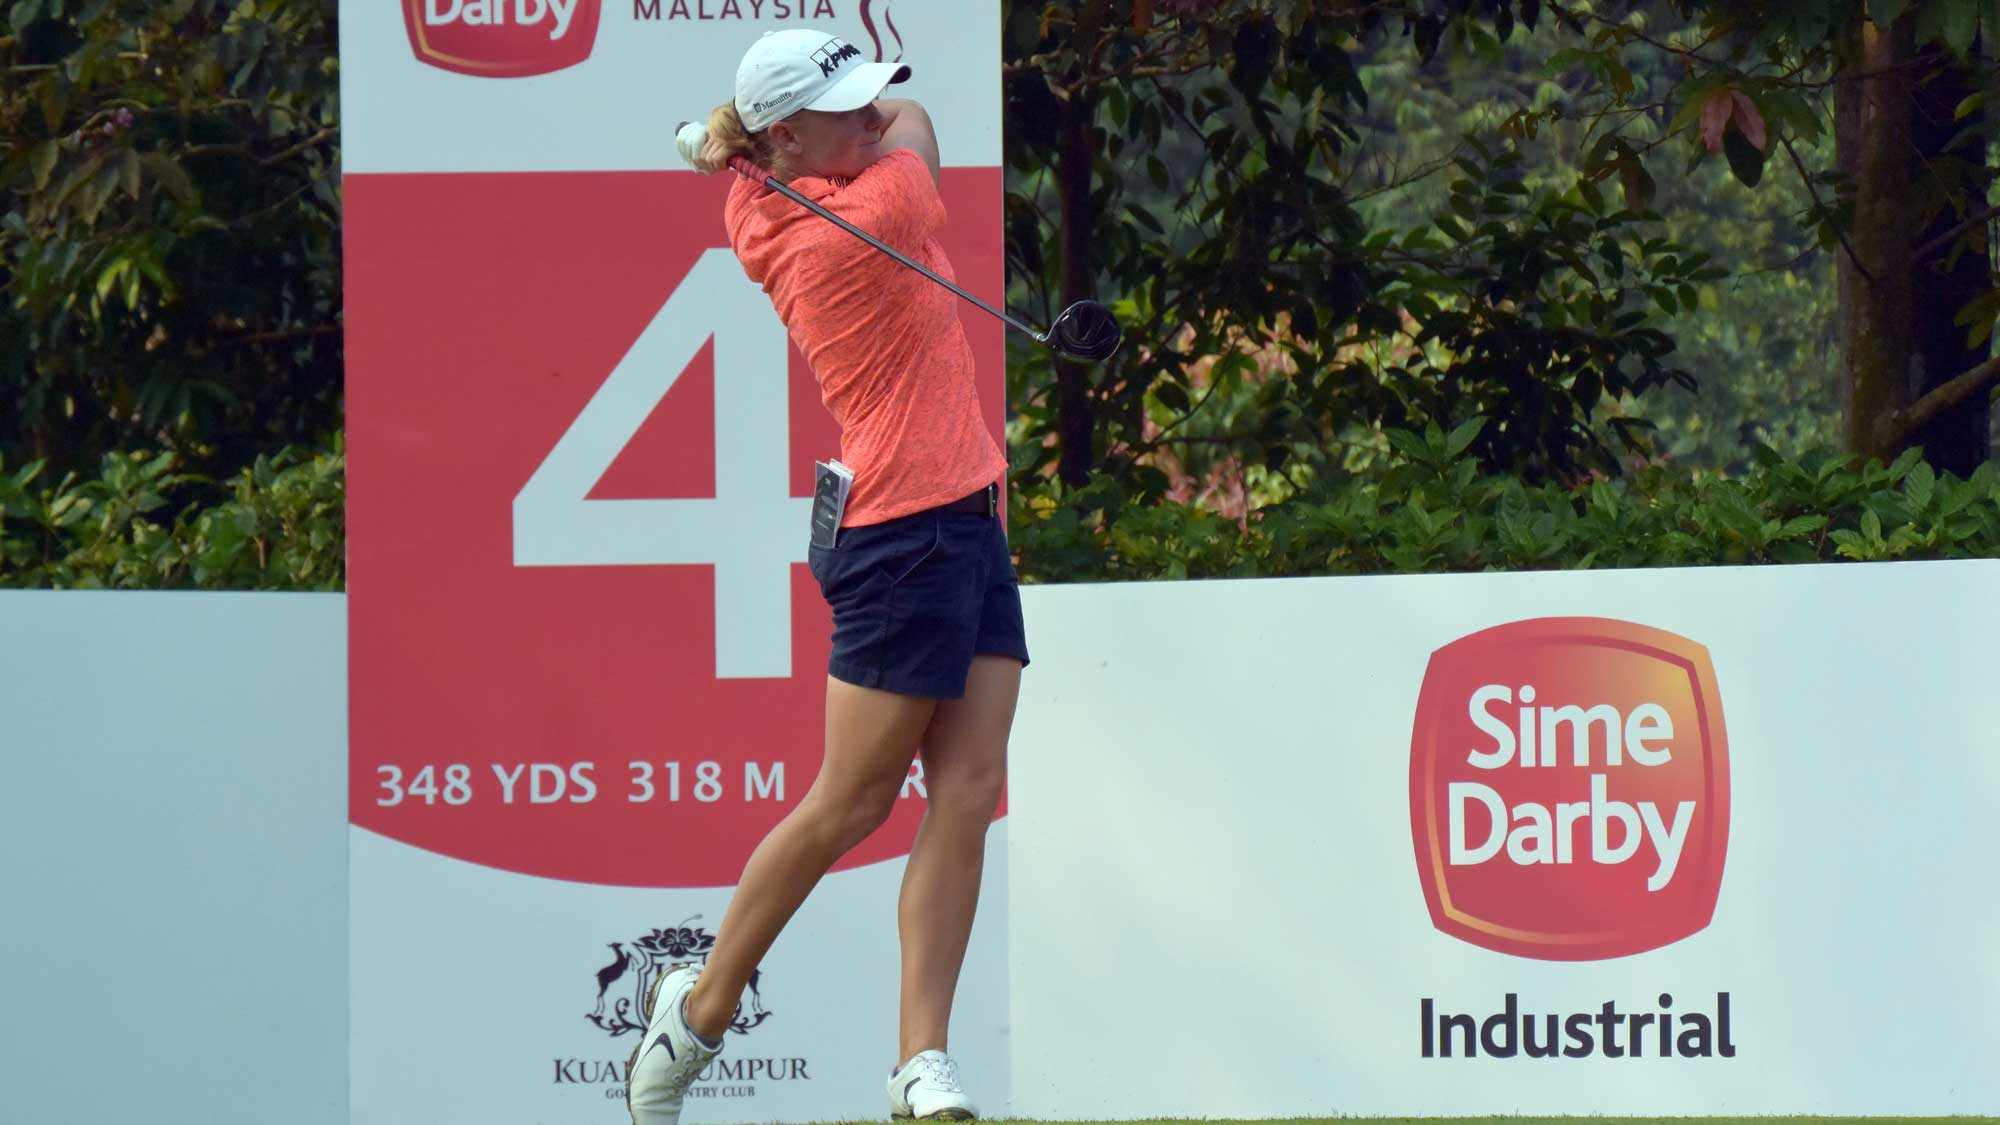 Stacy Lewis of USA watches her tee shot on the 4th hole during round three of the Sime Darby LPGA Tour at Kuala Lumpur Golf & Country Club